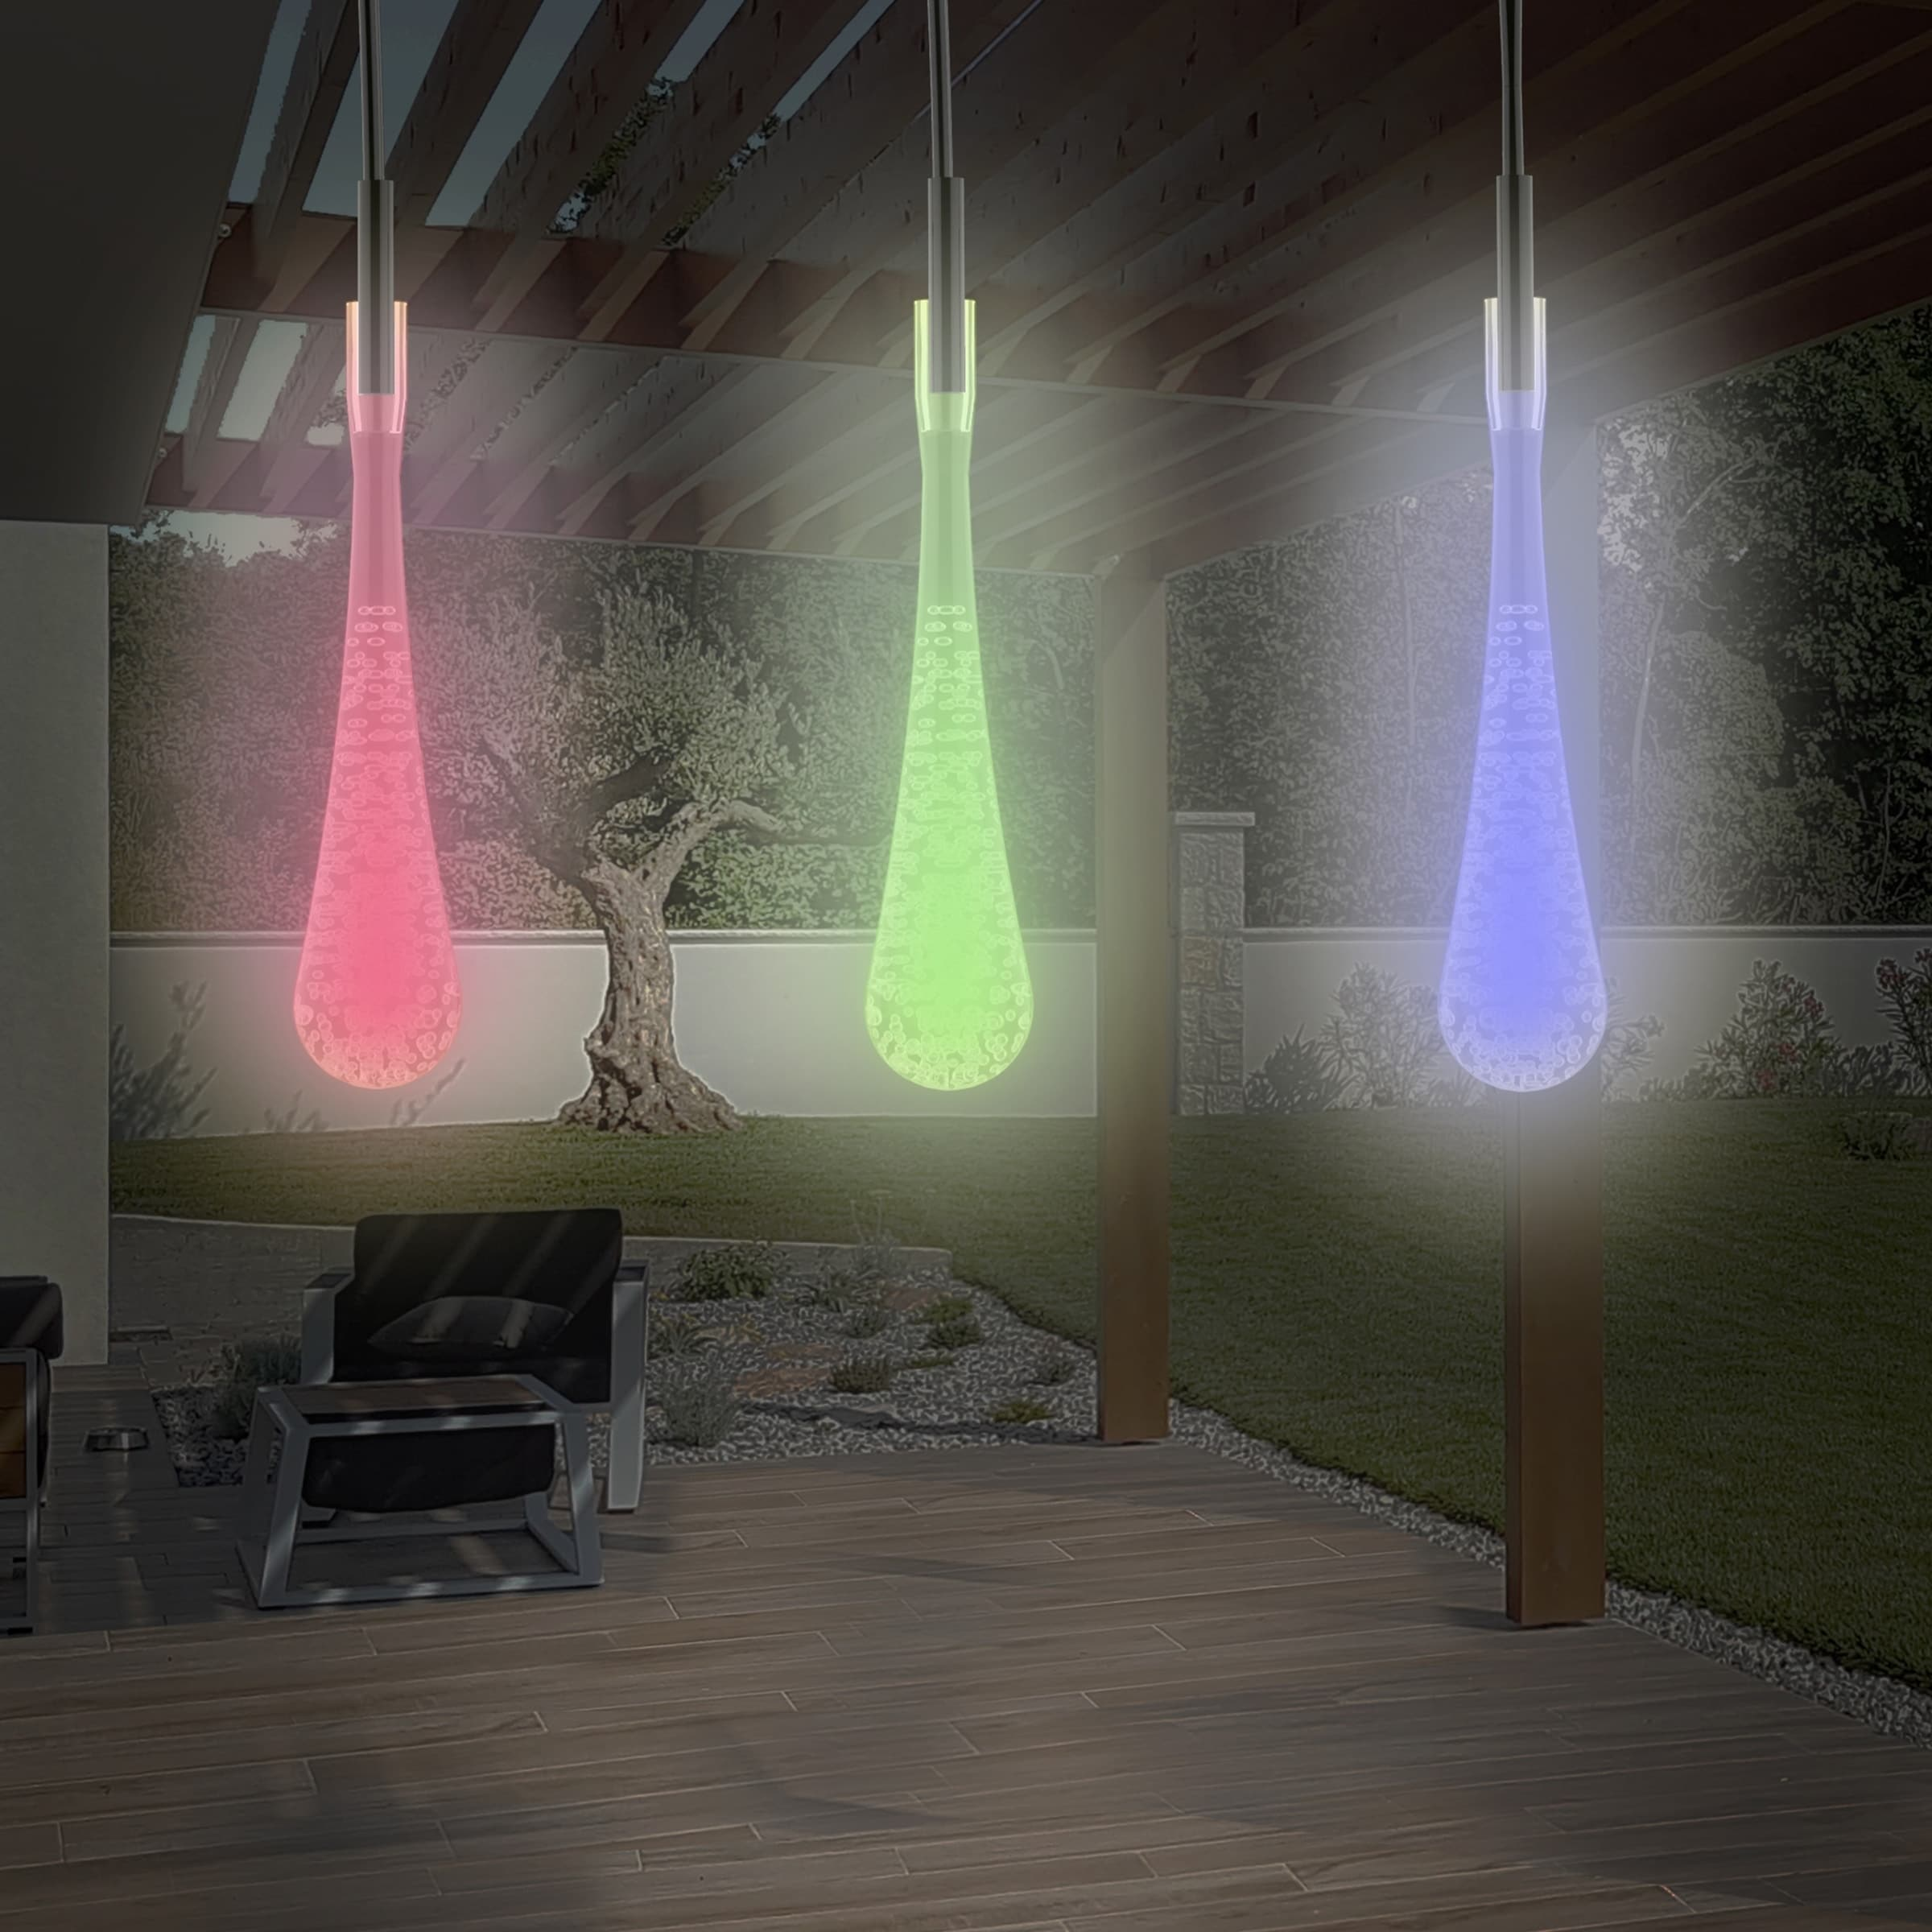 Tear Drop Outdoor Led String Lights Set Of 2 30 Bulb Solar 8 Modes Rechargeable Battery By Pure Garden